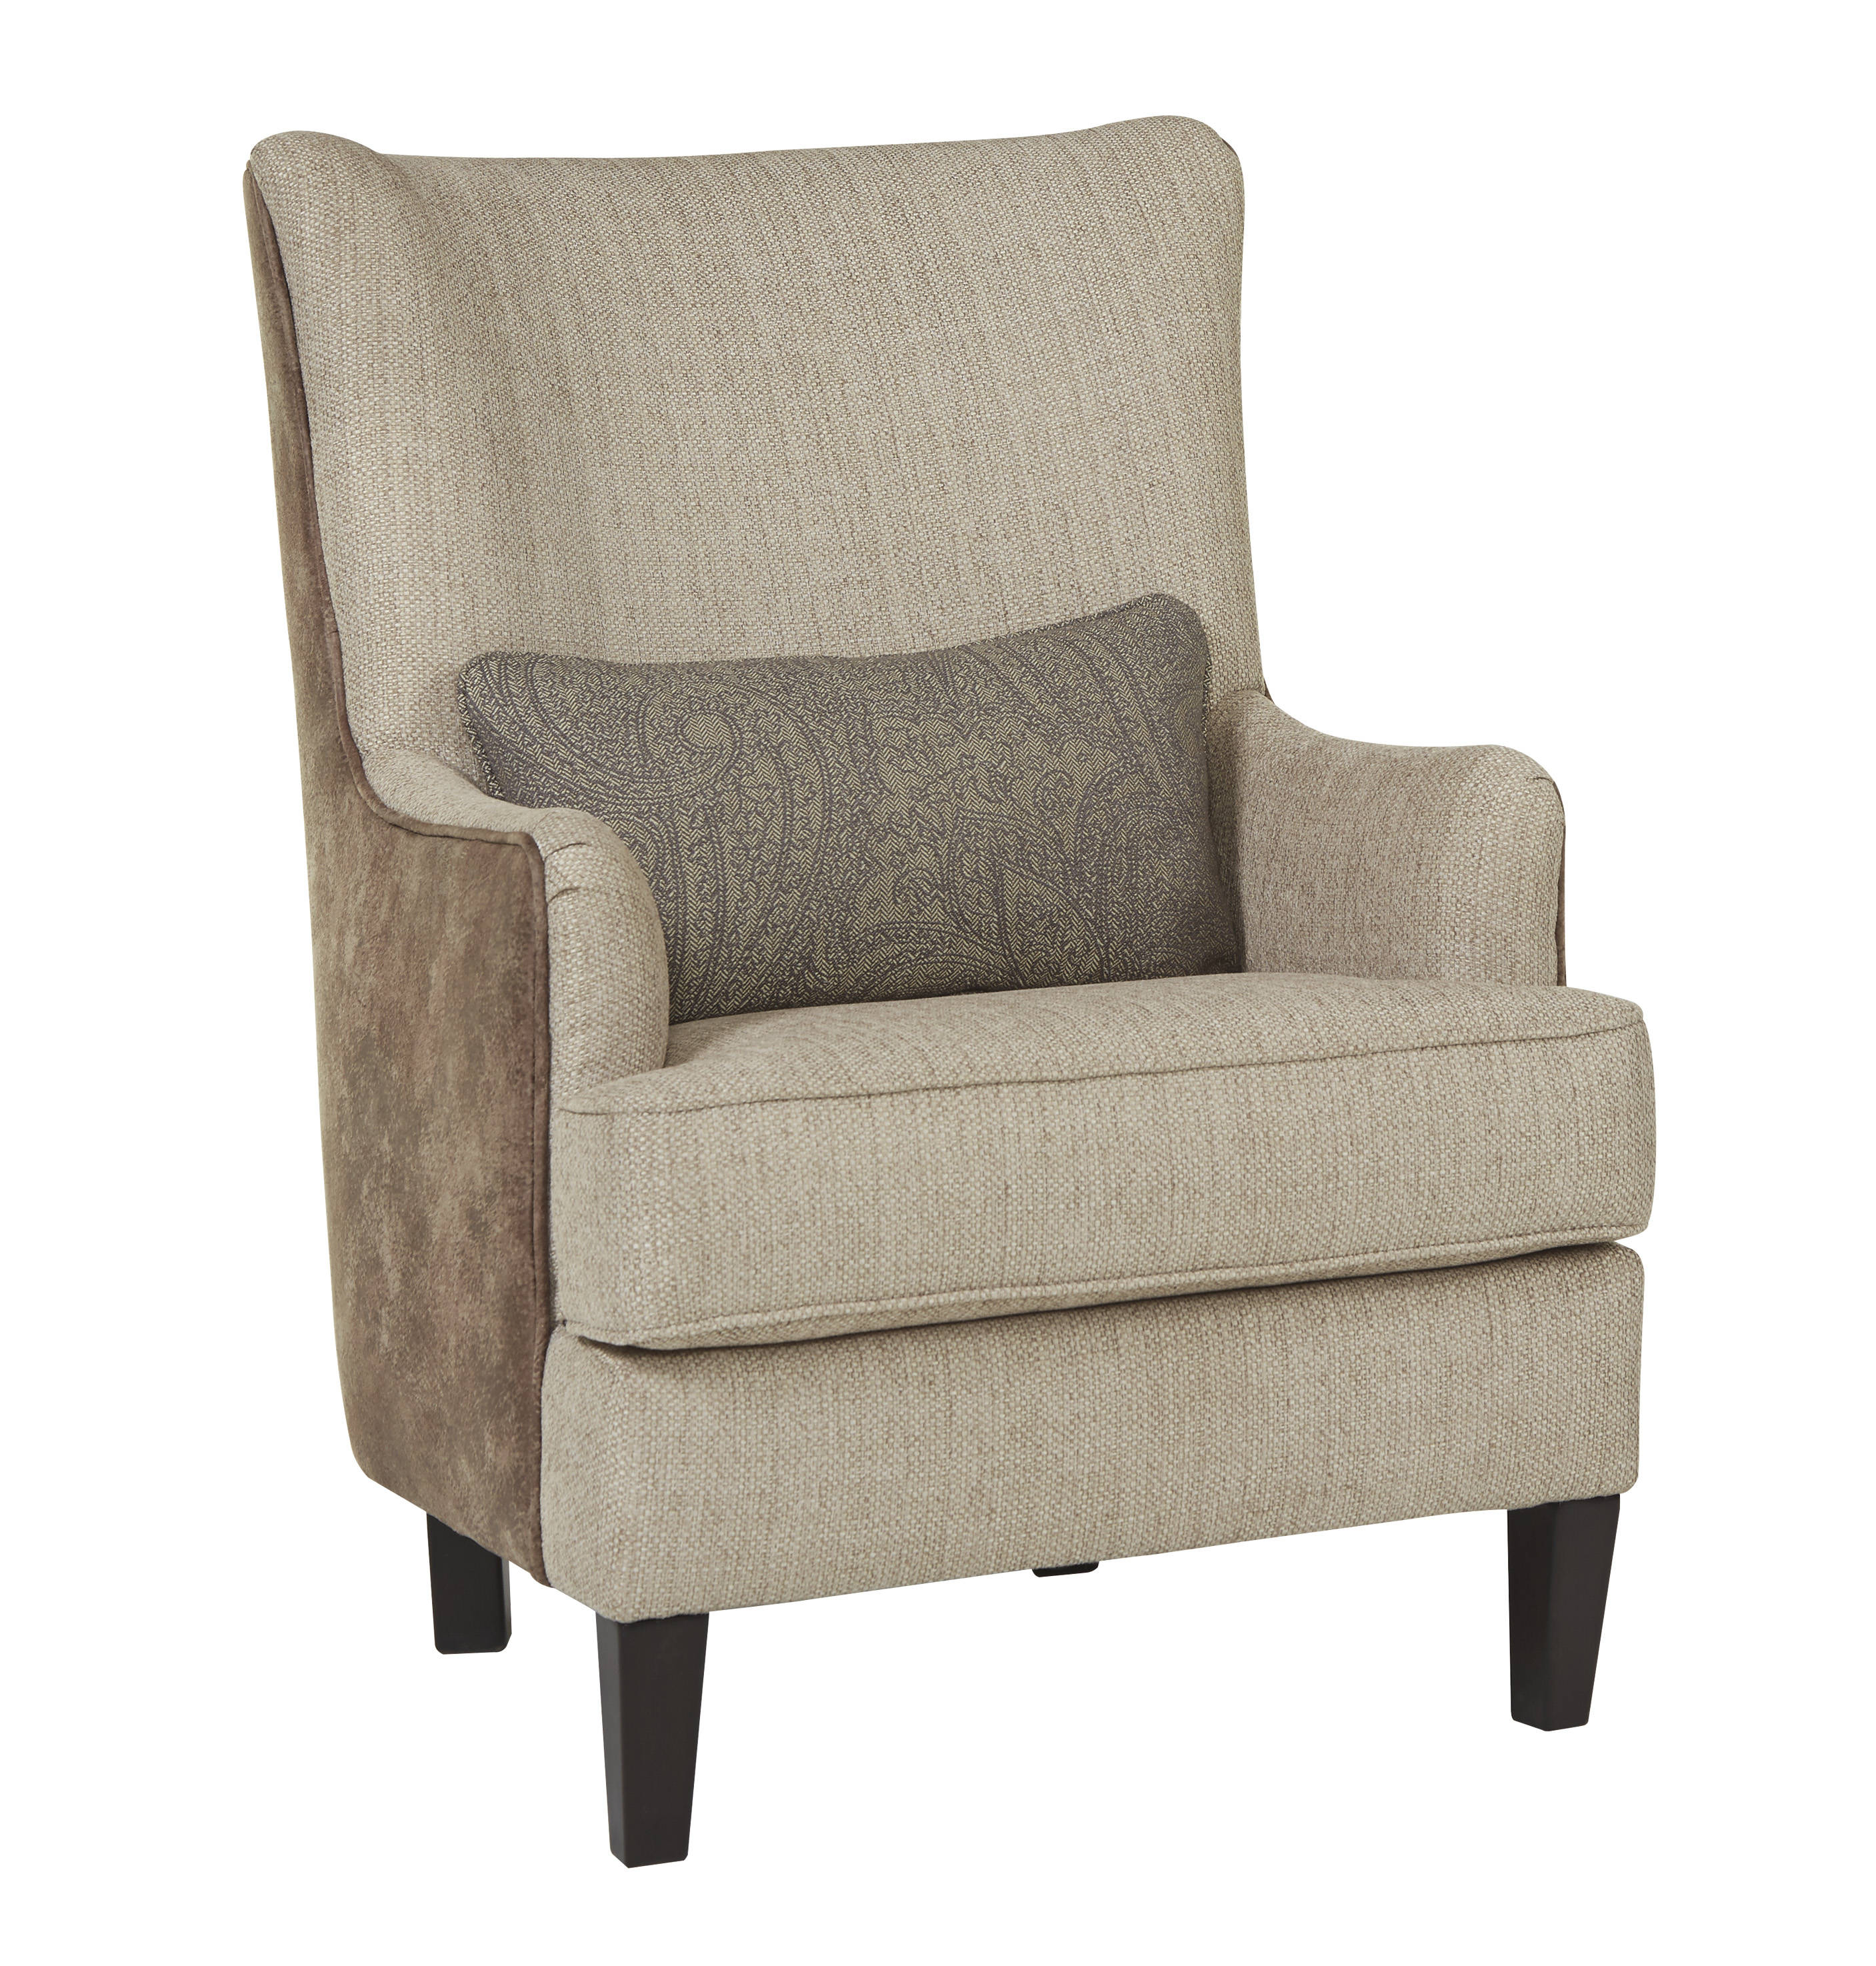 Ashley Furniture Baxley Jute Accent Chair Click To Enlarge ...